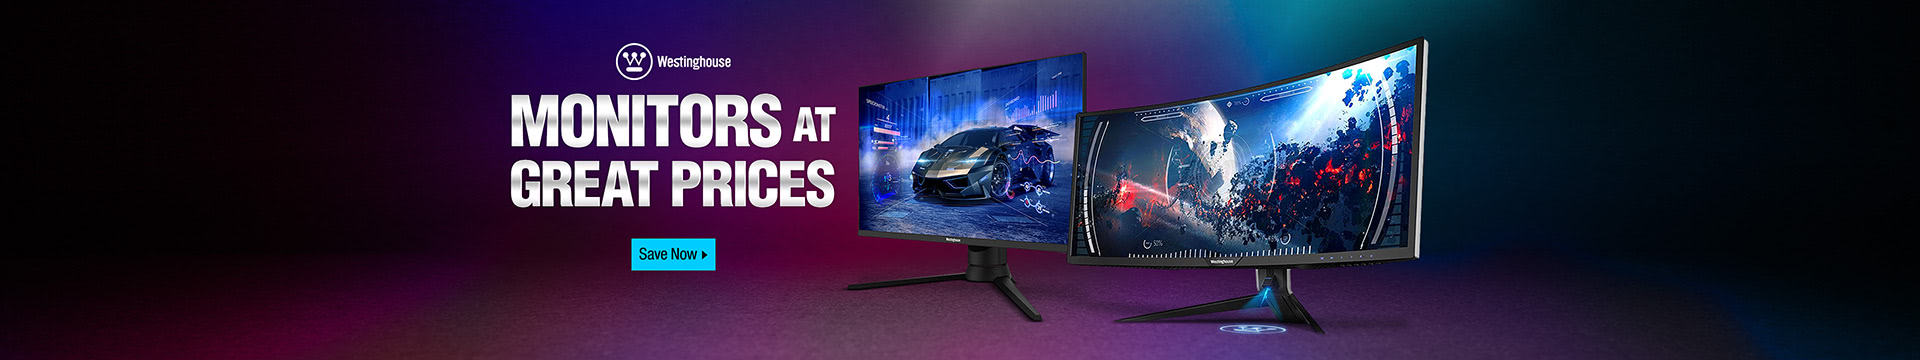 Monitors at great prices